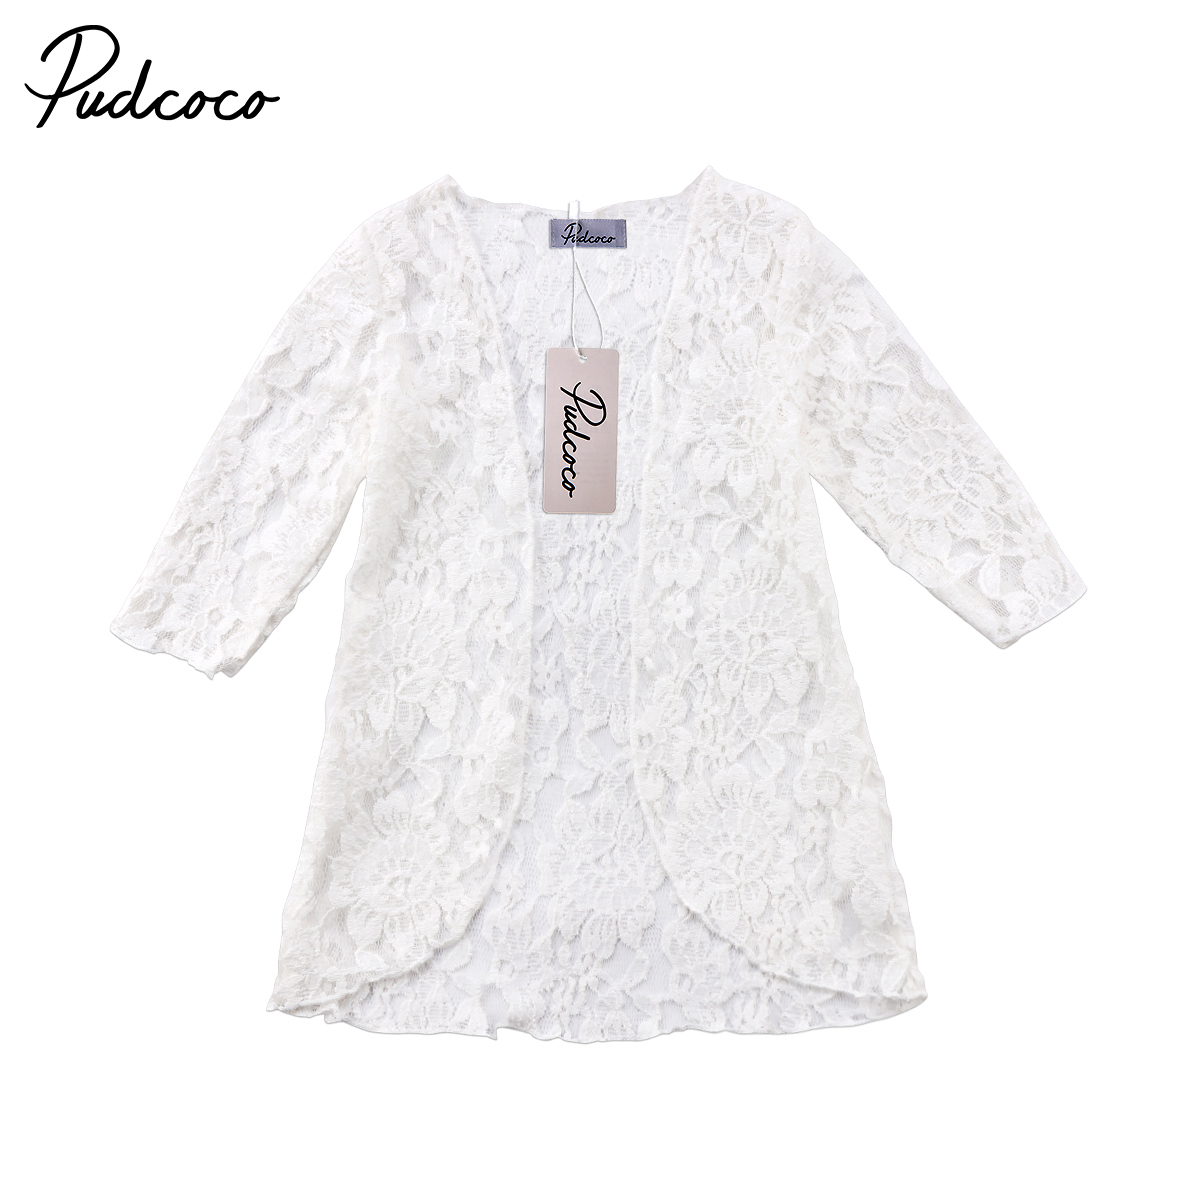 2018 Brand New Toddler Infant Child Kids Baby Girl Lace Floral Sunscreen Beach Dress Rashguard Clothes Cover Outerwear 6M-5T rashguard mergulho rashguard a808